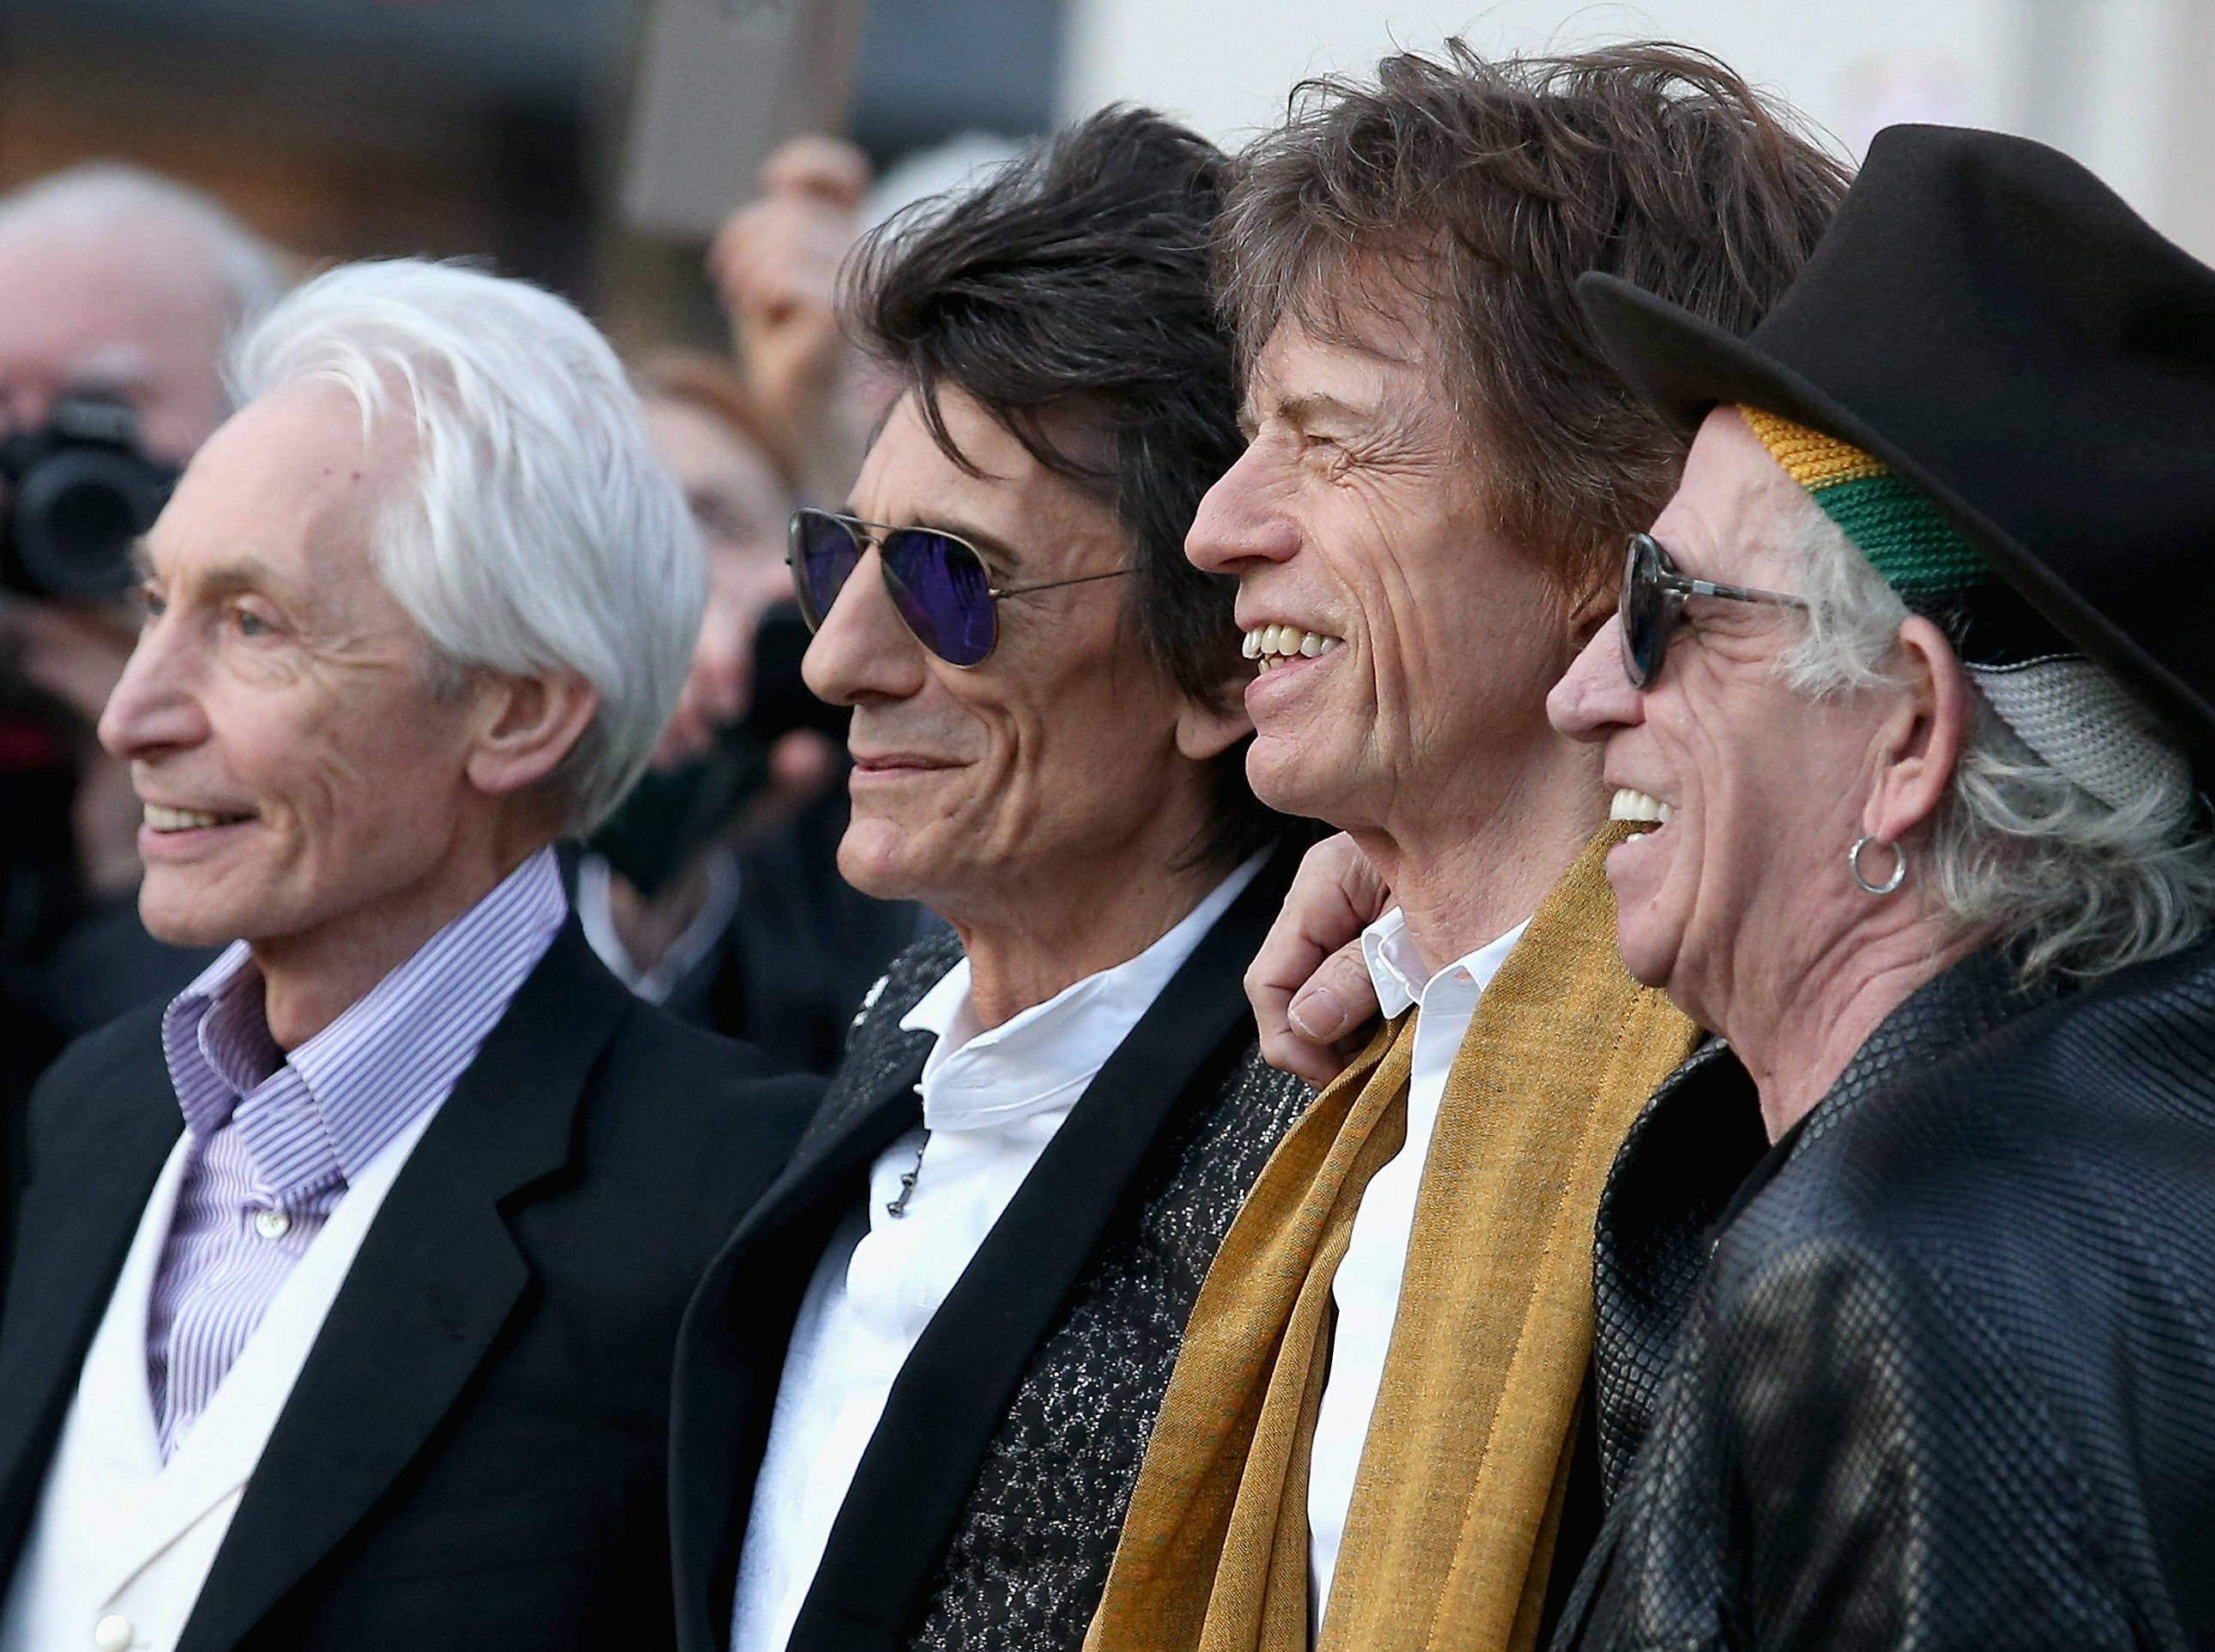 LONDON, ENGLAND - APRIL 04: .Ronnie Wood, Mick Jagger and Keith Richards and Charlie Watts arrive for the private view of 'The Rolling Stones: Exhibitionism' at the Saatchi Gallery on April 4, 2016 in London, England. (Photo by Chris Jackson/Getty Images) ORG XMIT: 625810293 ORIG FILE ID: 519135774